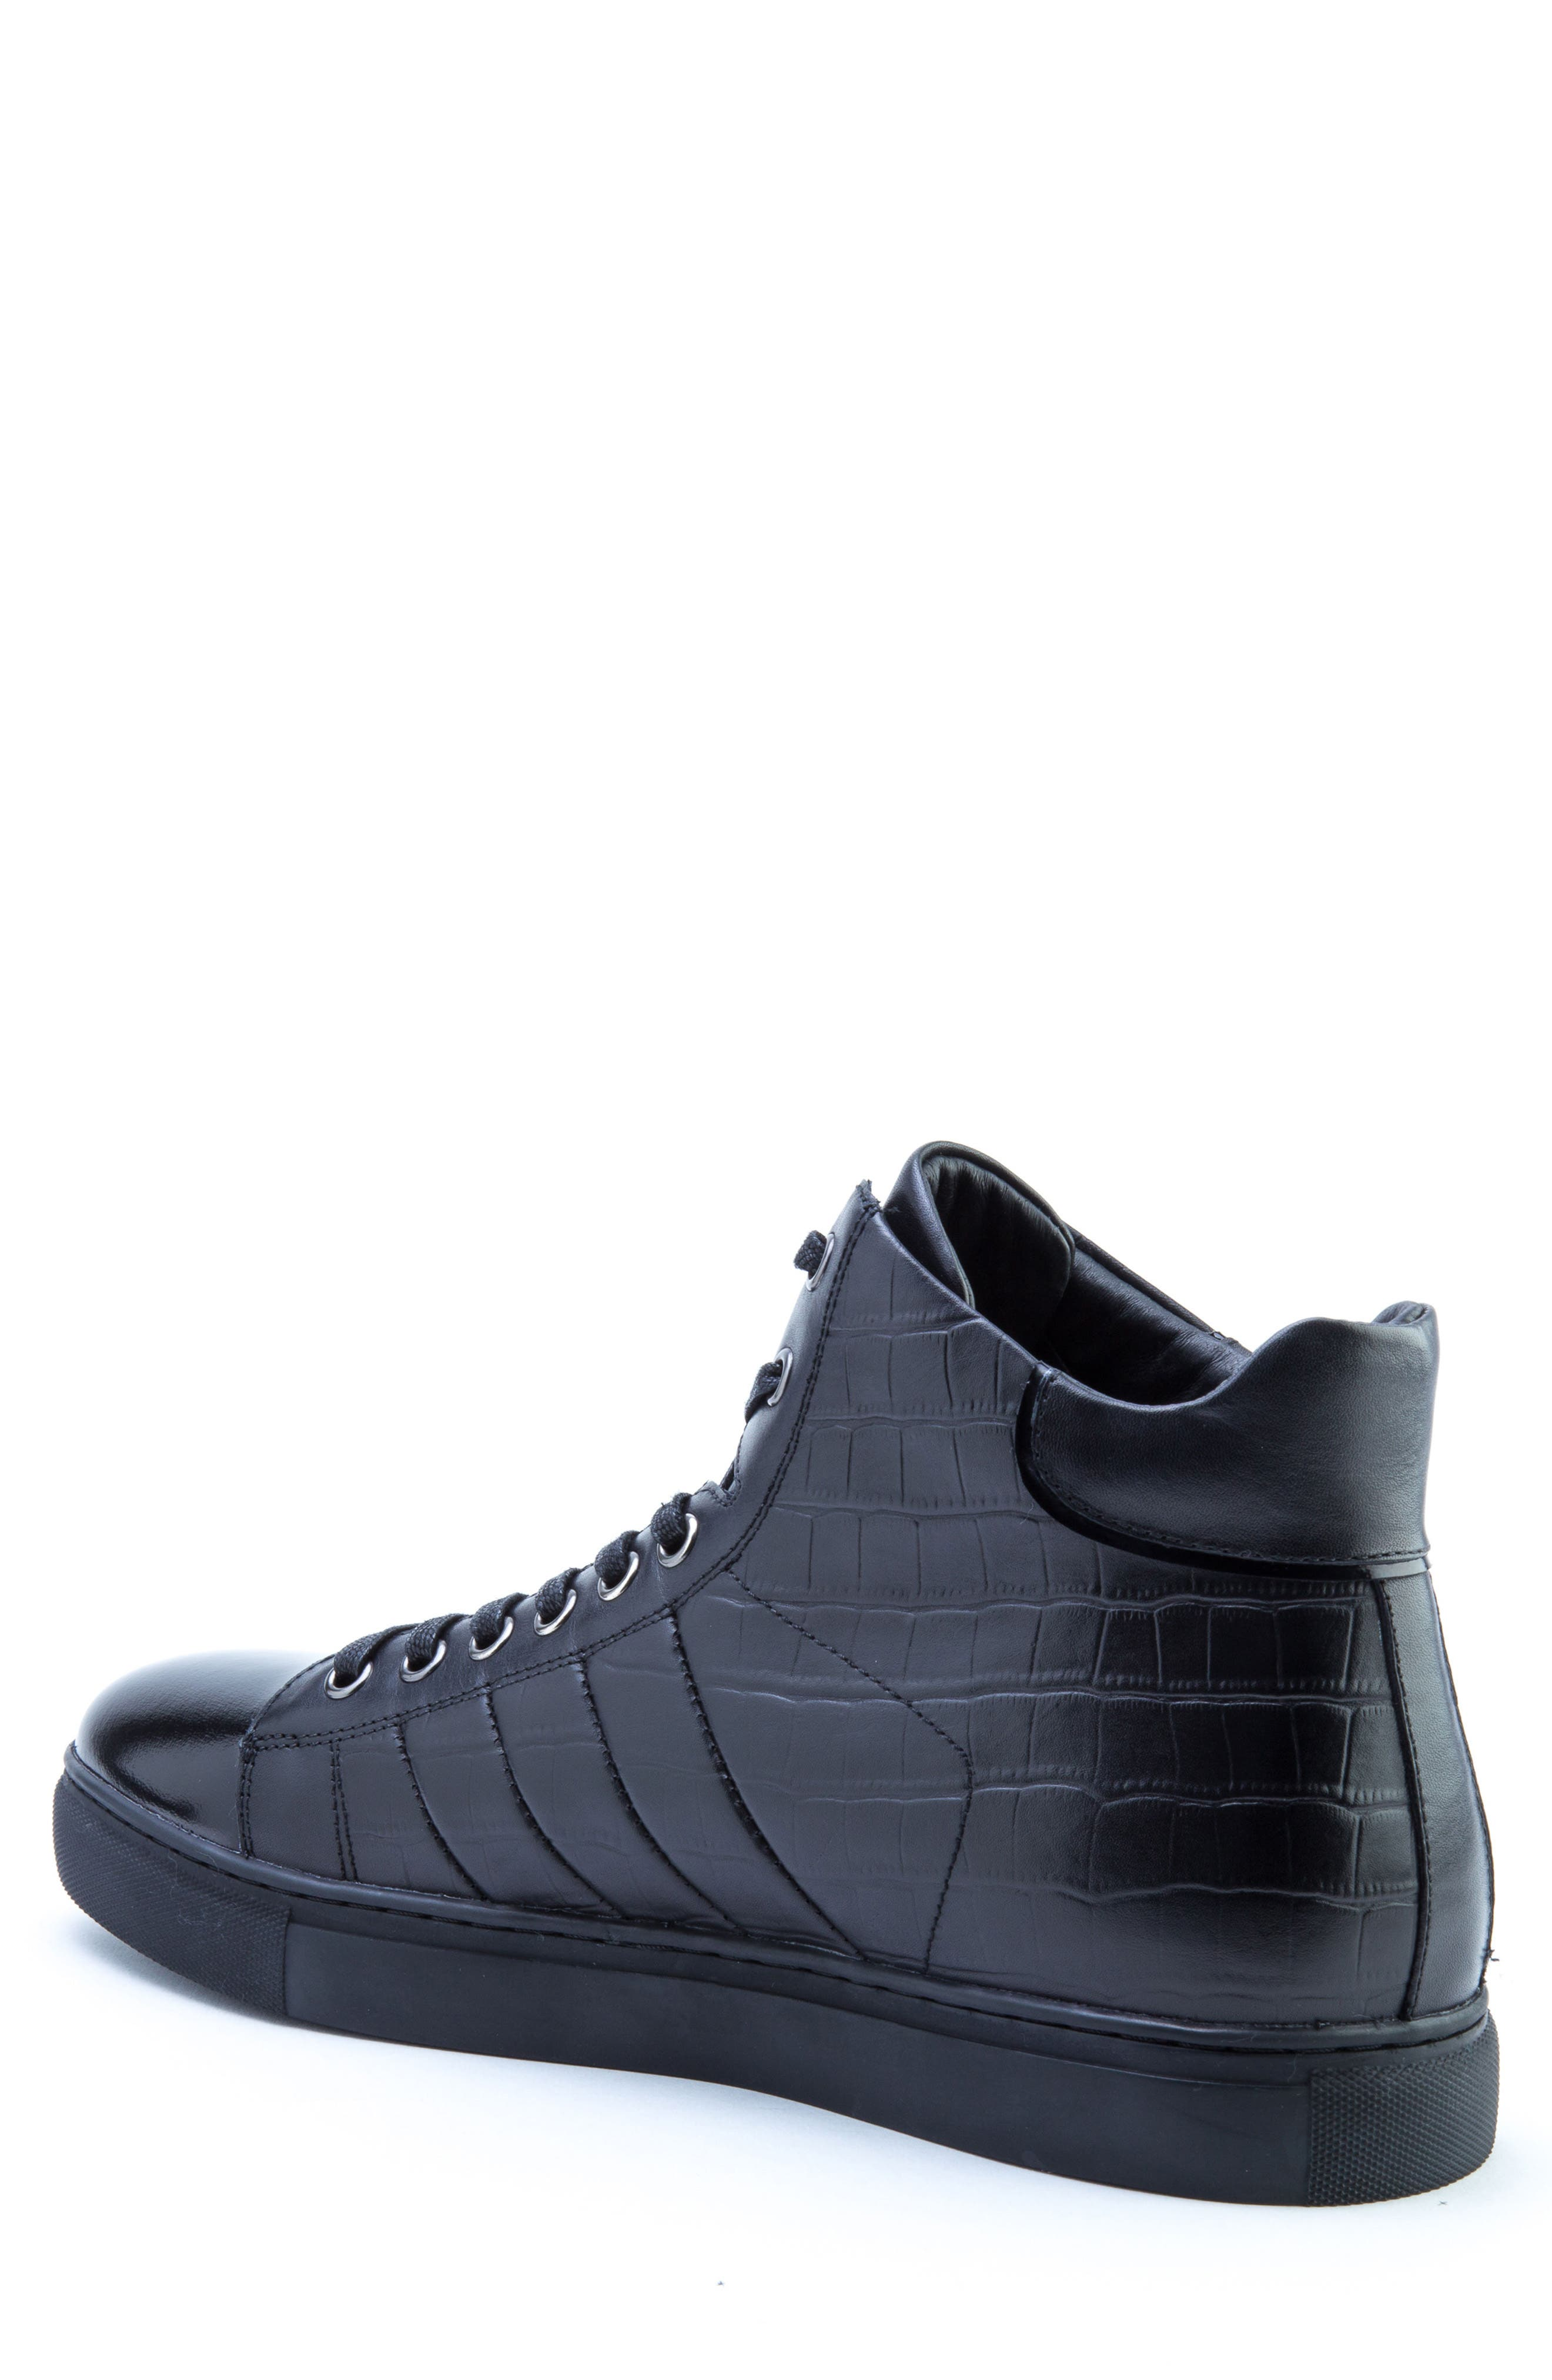 Clift High Top Sneaker,                             Alternate thumbnail 2, color,                             001